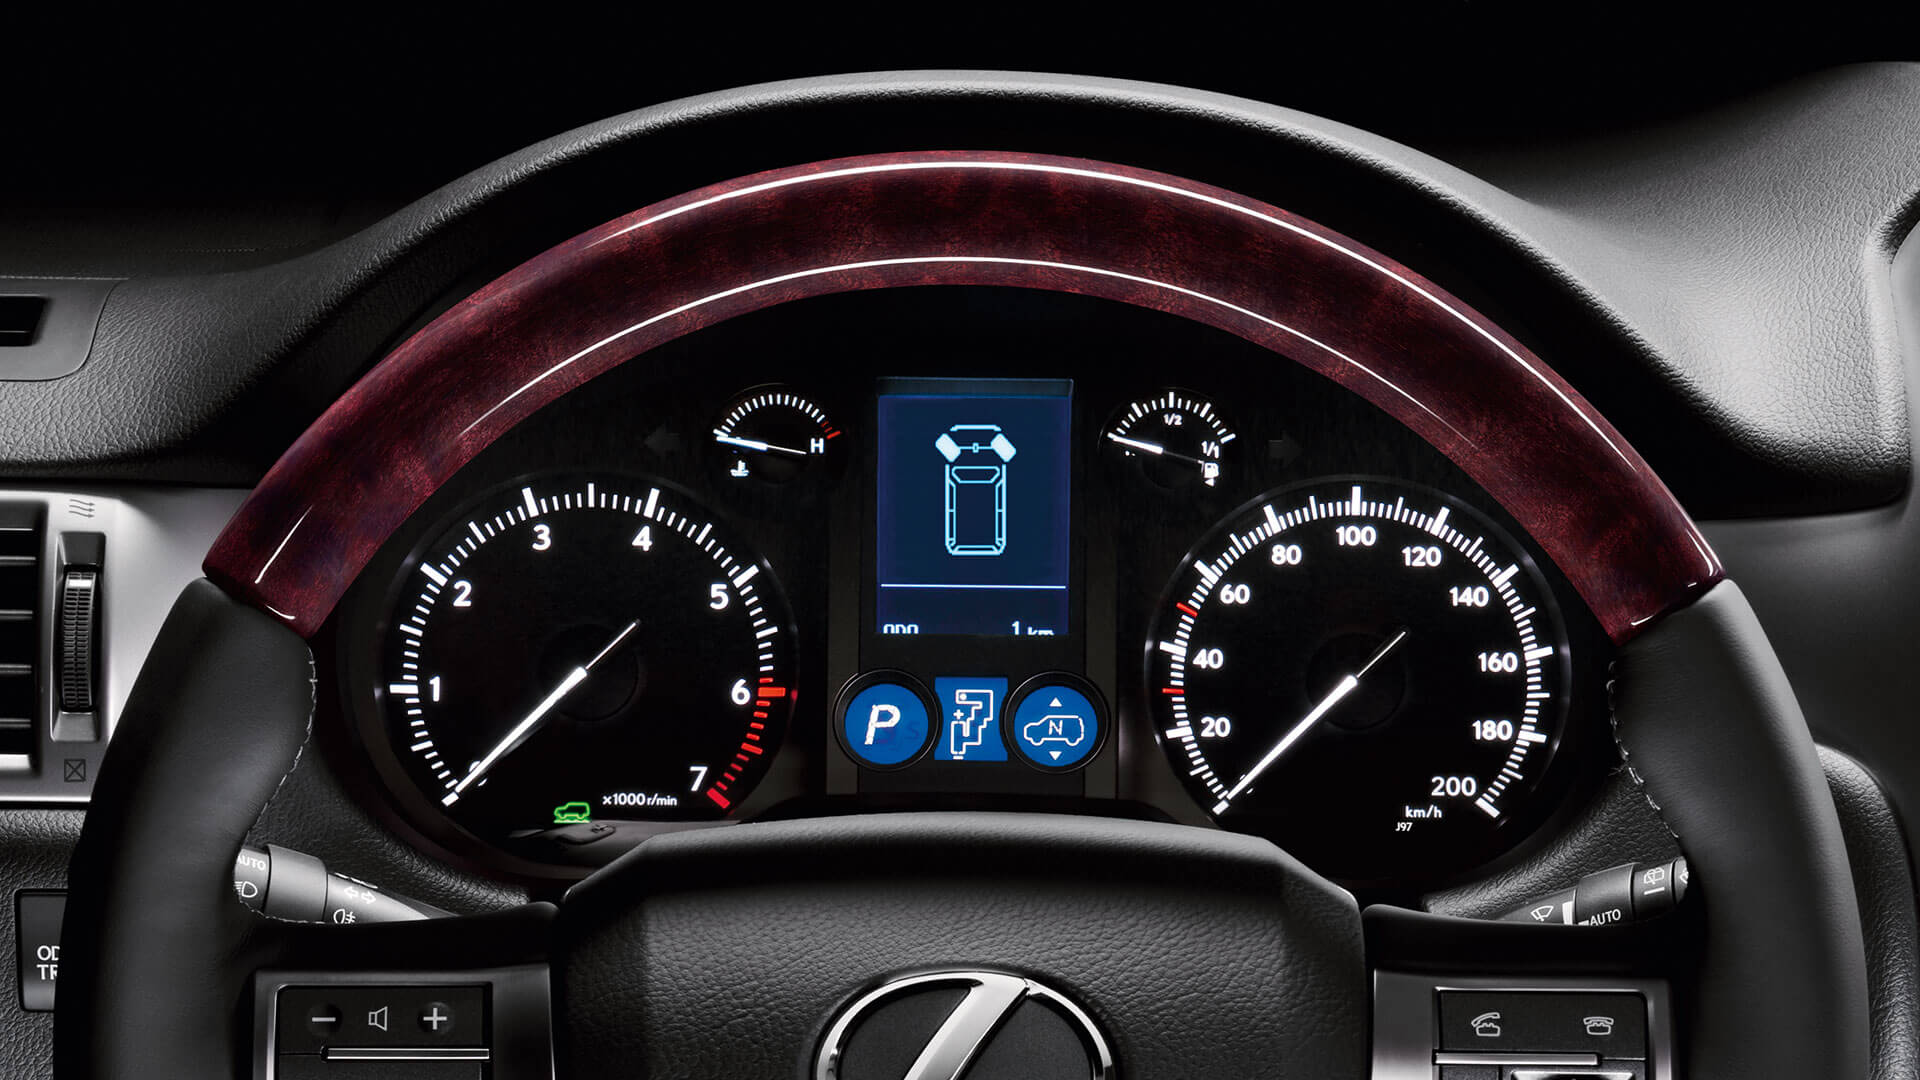 2017 lexus gx 460 features steering angle display